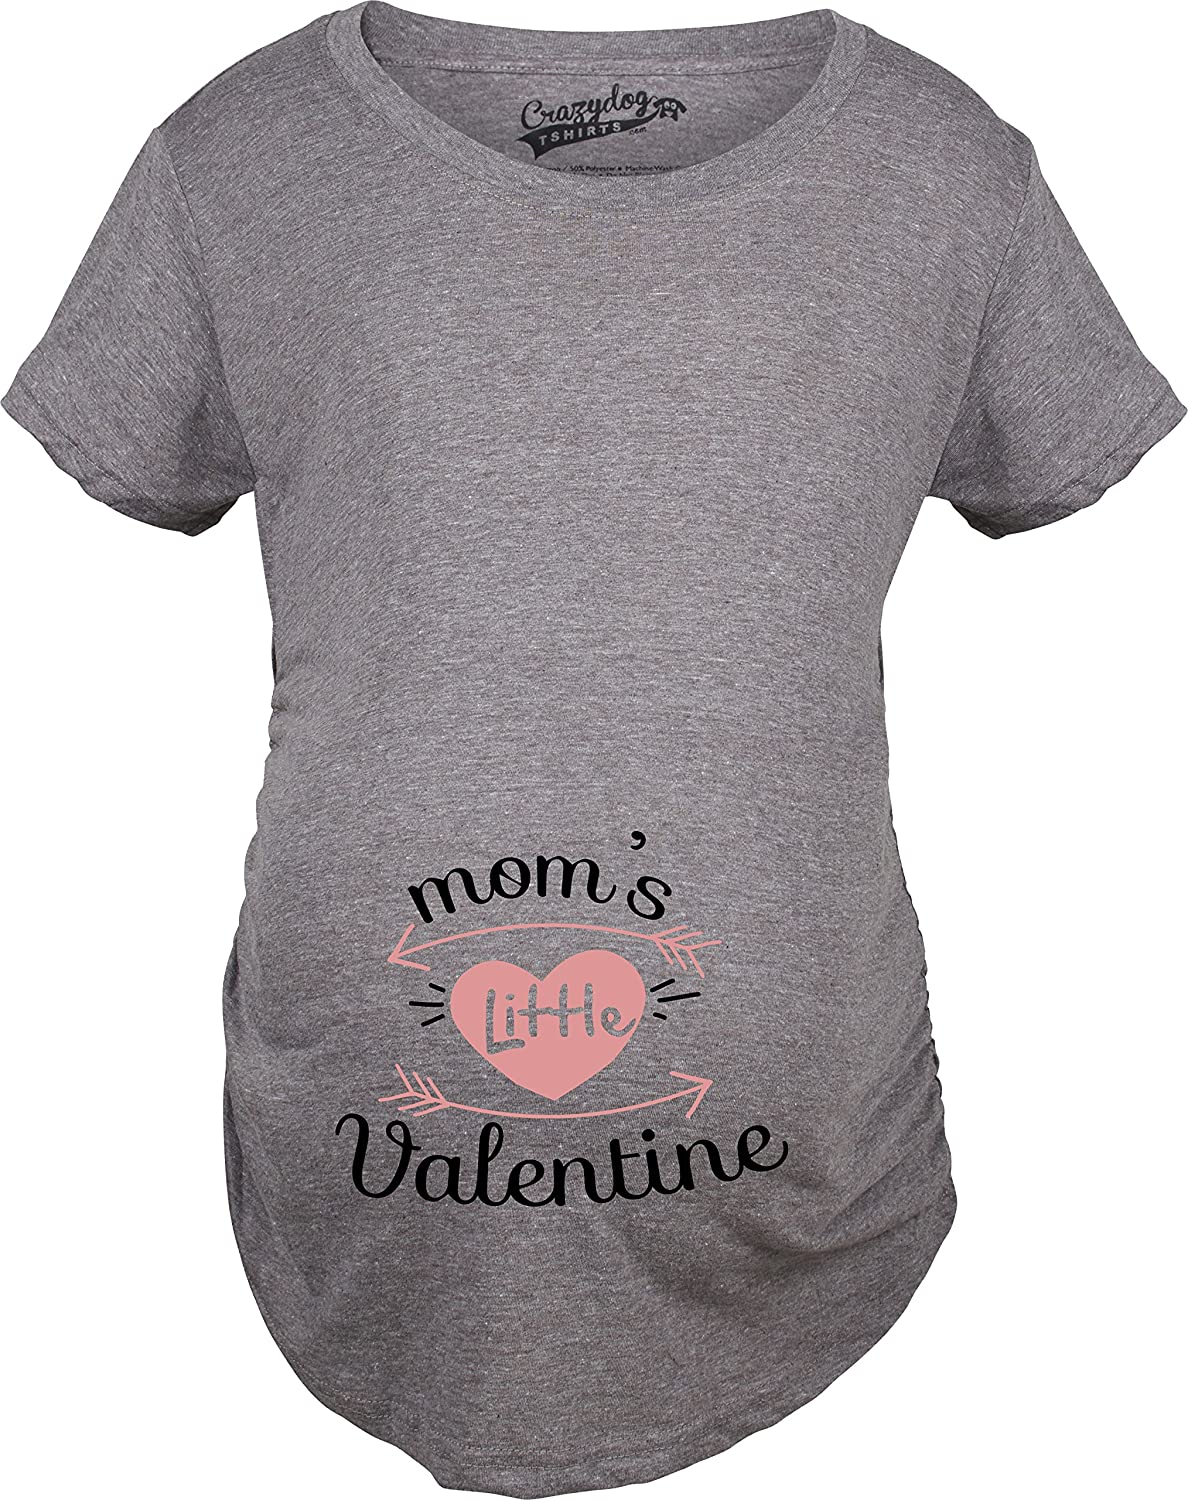 crazy dog tshirts maternity moms little valentine cute funny valentines day pregnancy t shirt at amazon womens clothing store